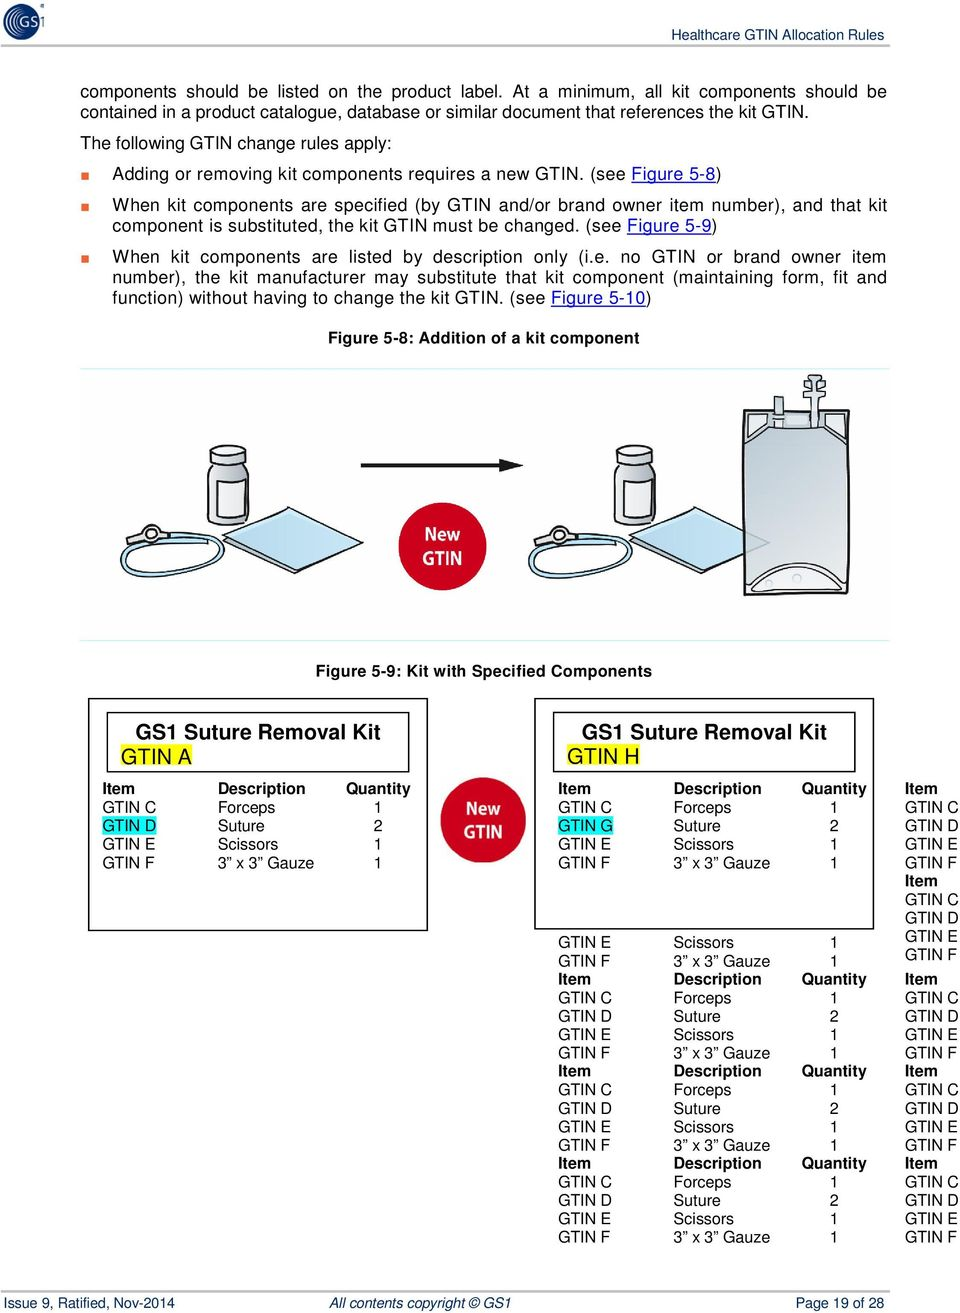 (see Figure 5-8) When kit components are specified (by GTIN and/or brand owner item number), and that kit component is substituted, the kit GTIN must be changed.